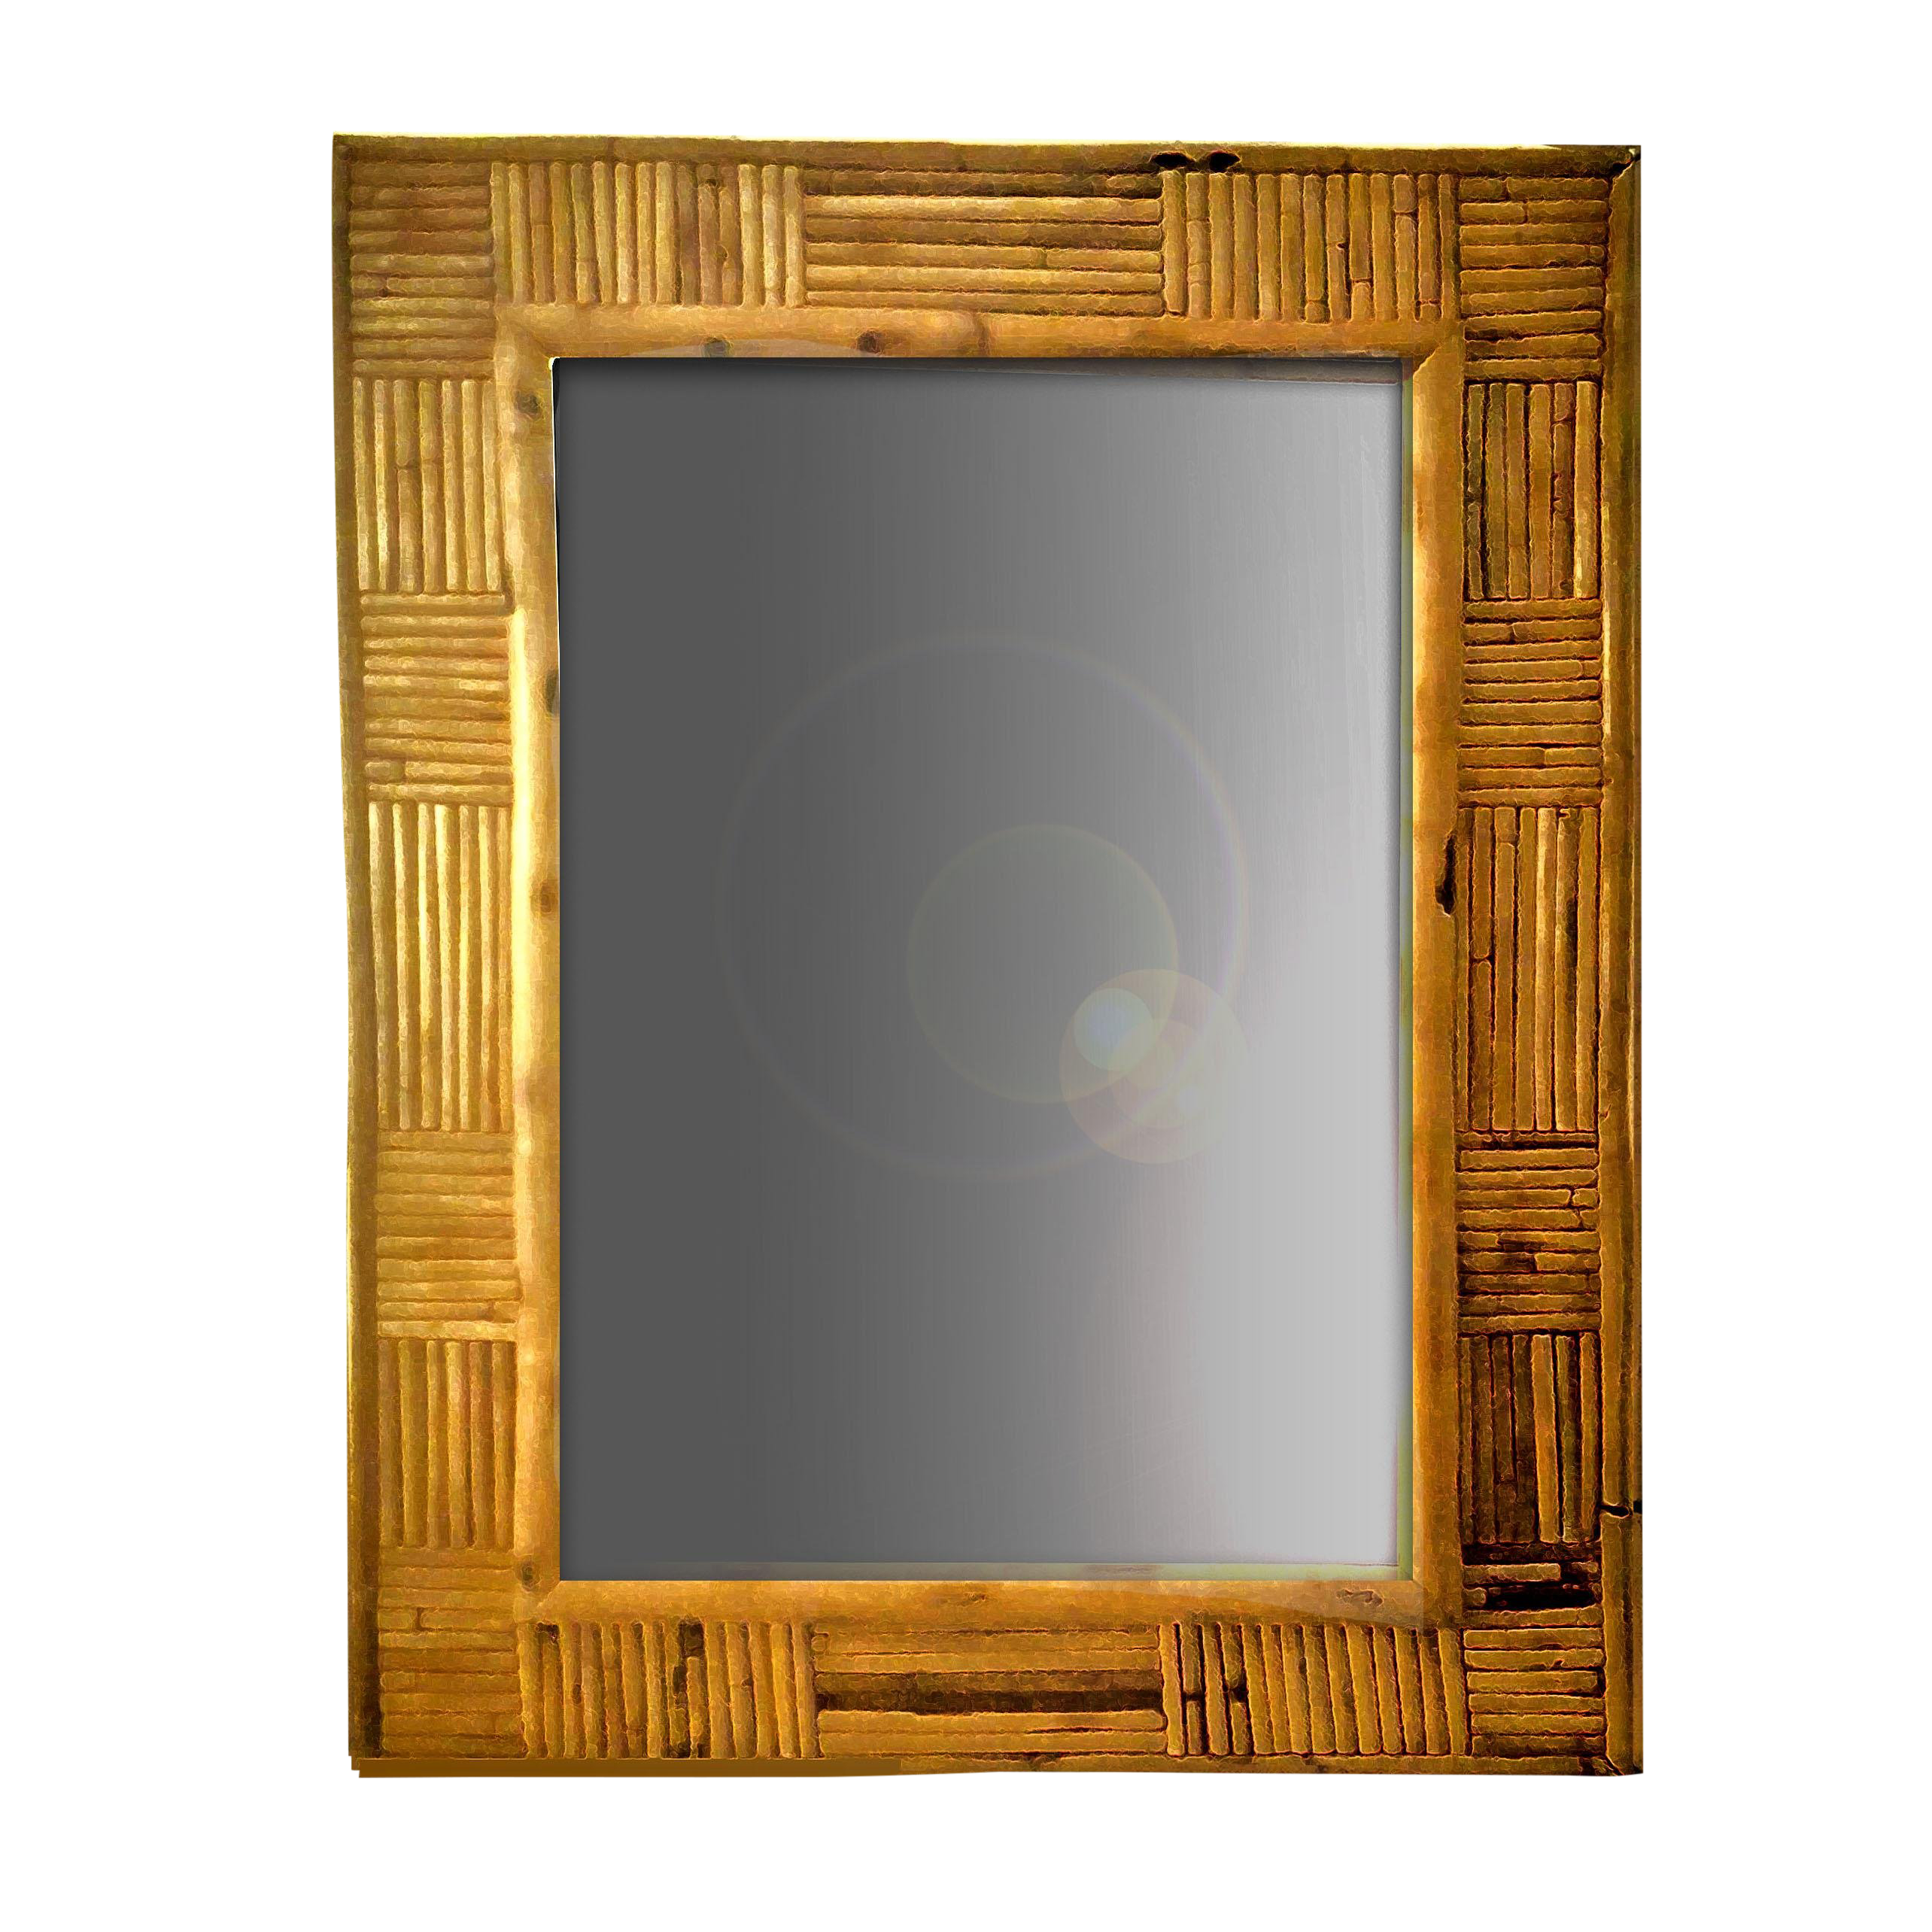 antique wall mirrors brass vintage pencil reed rattan mosaic patchwork patterned framed wall mirror used mirrors for sale chairish